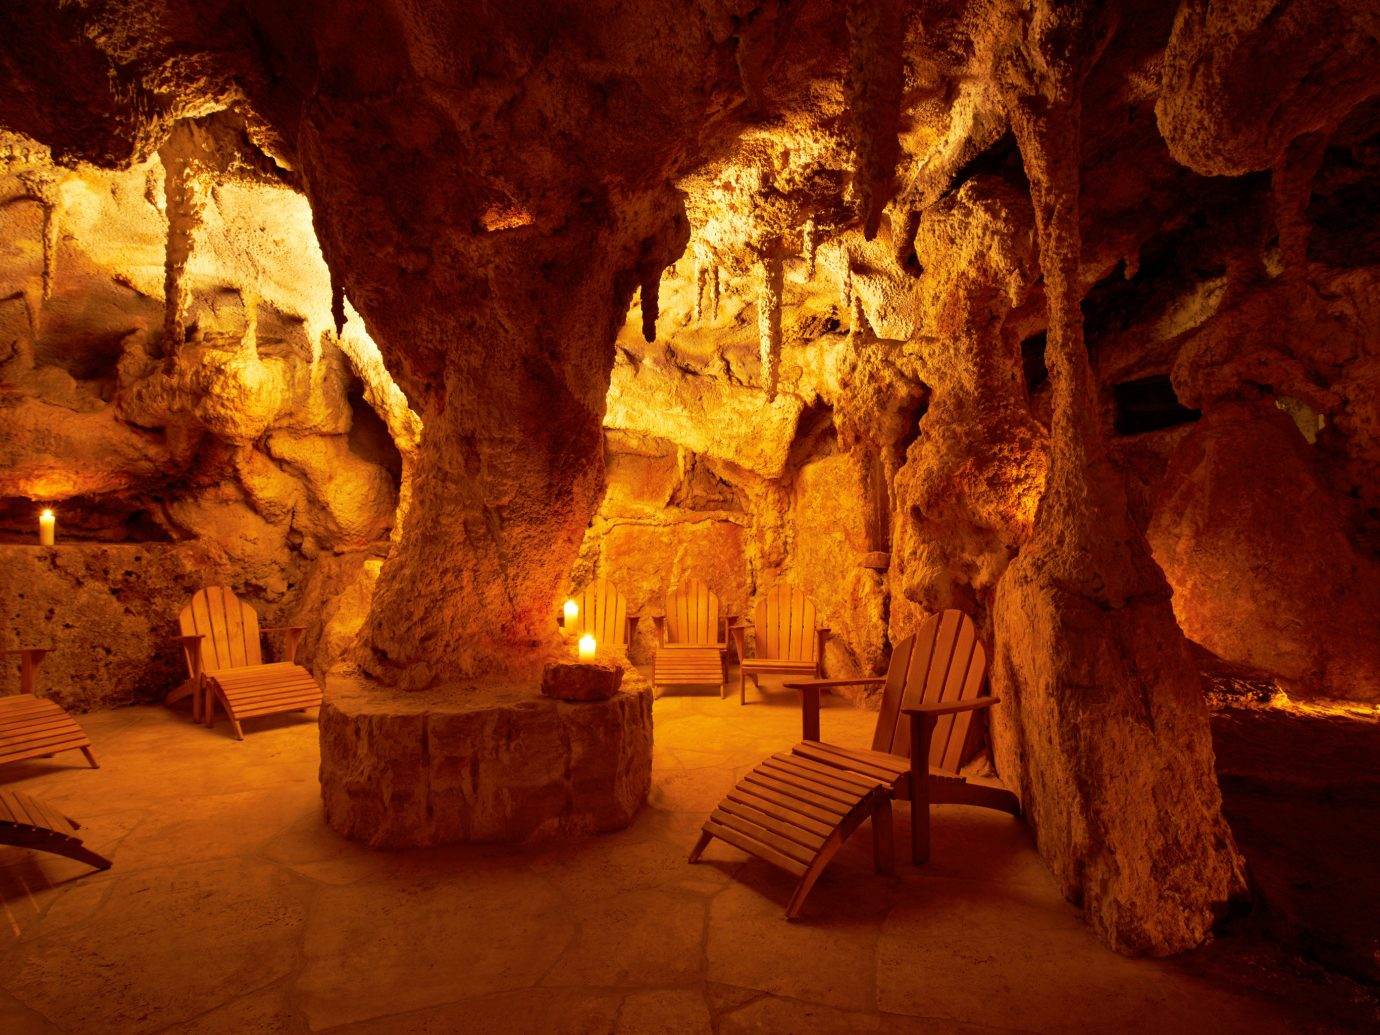 All-Inclusive Resorts Hotels Nature geographical feature landform cave indoor stalagmite formation stone